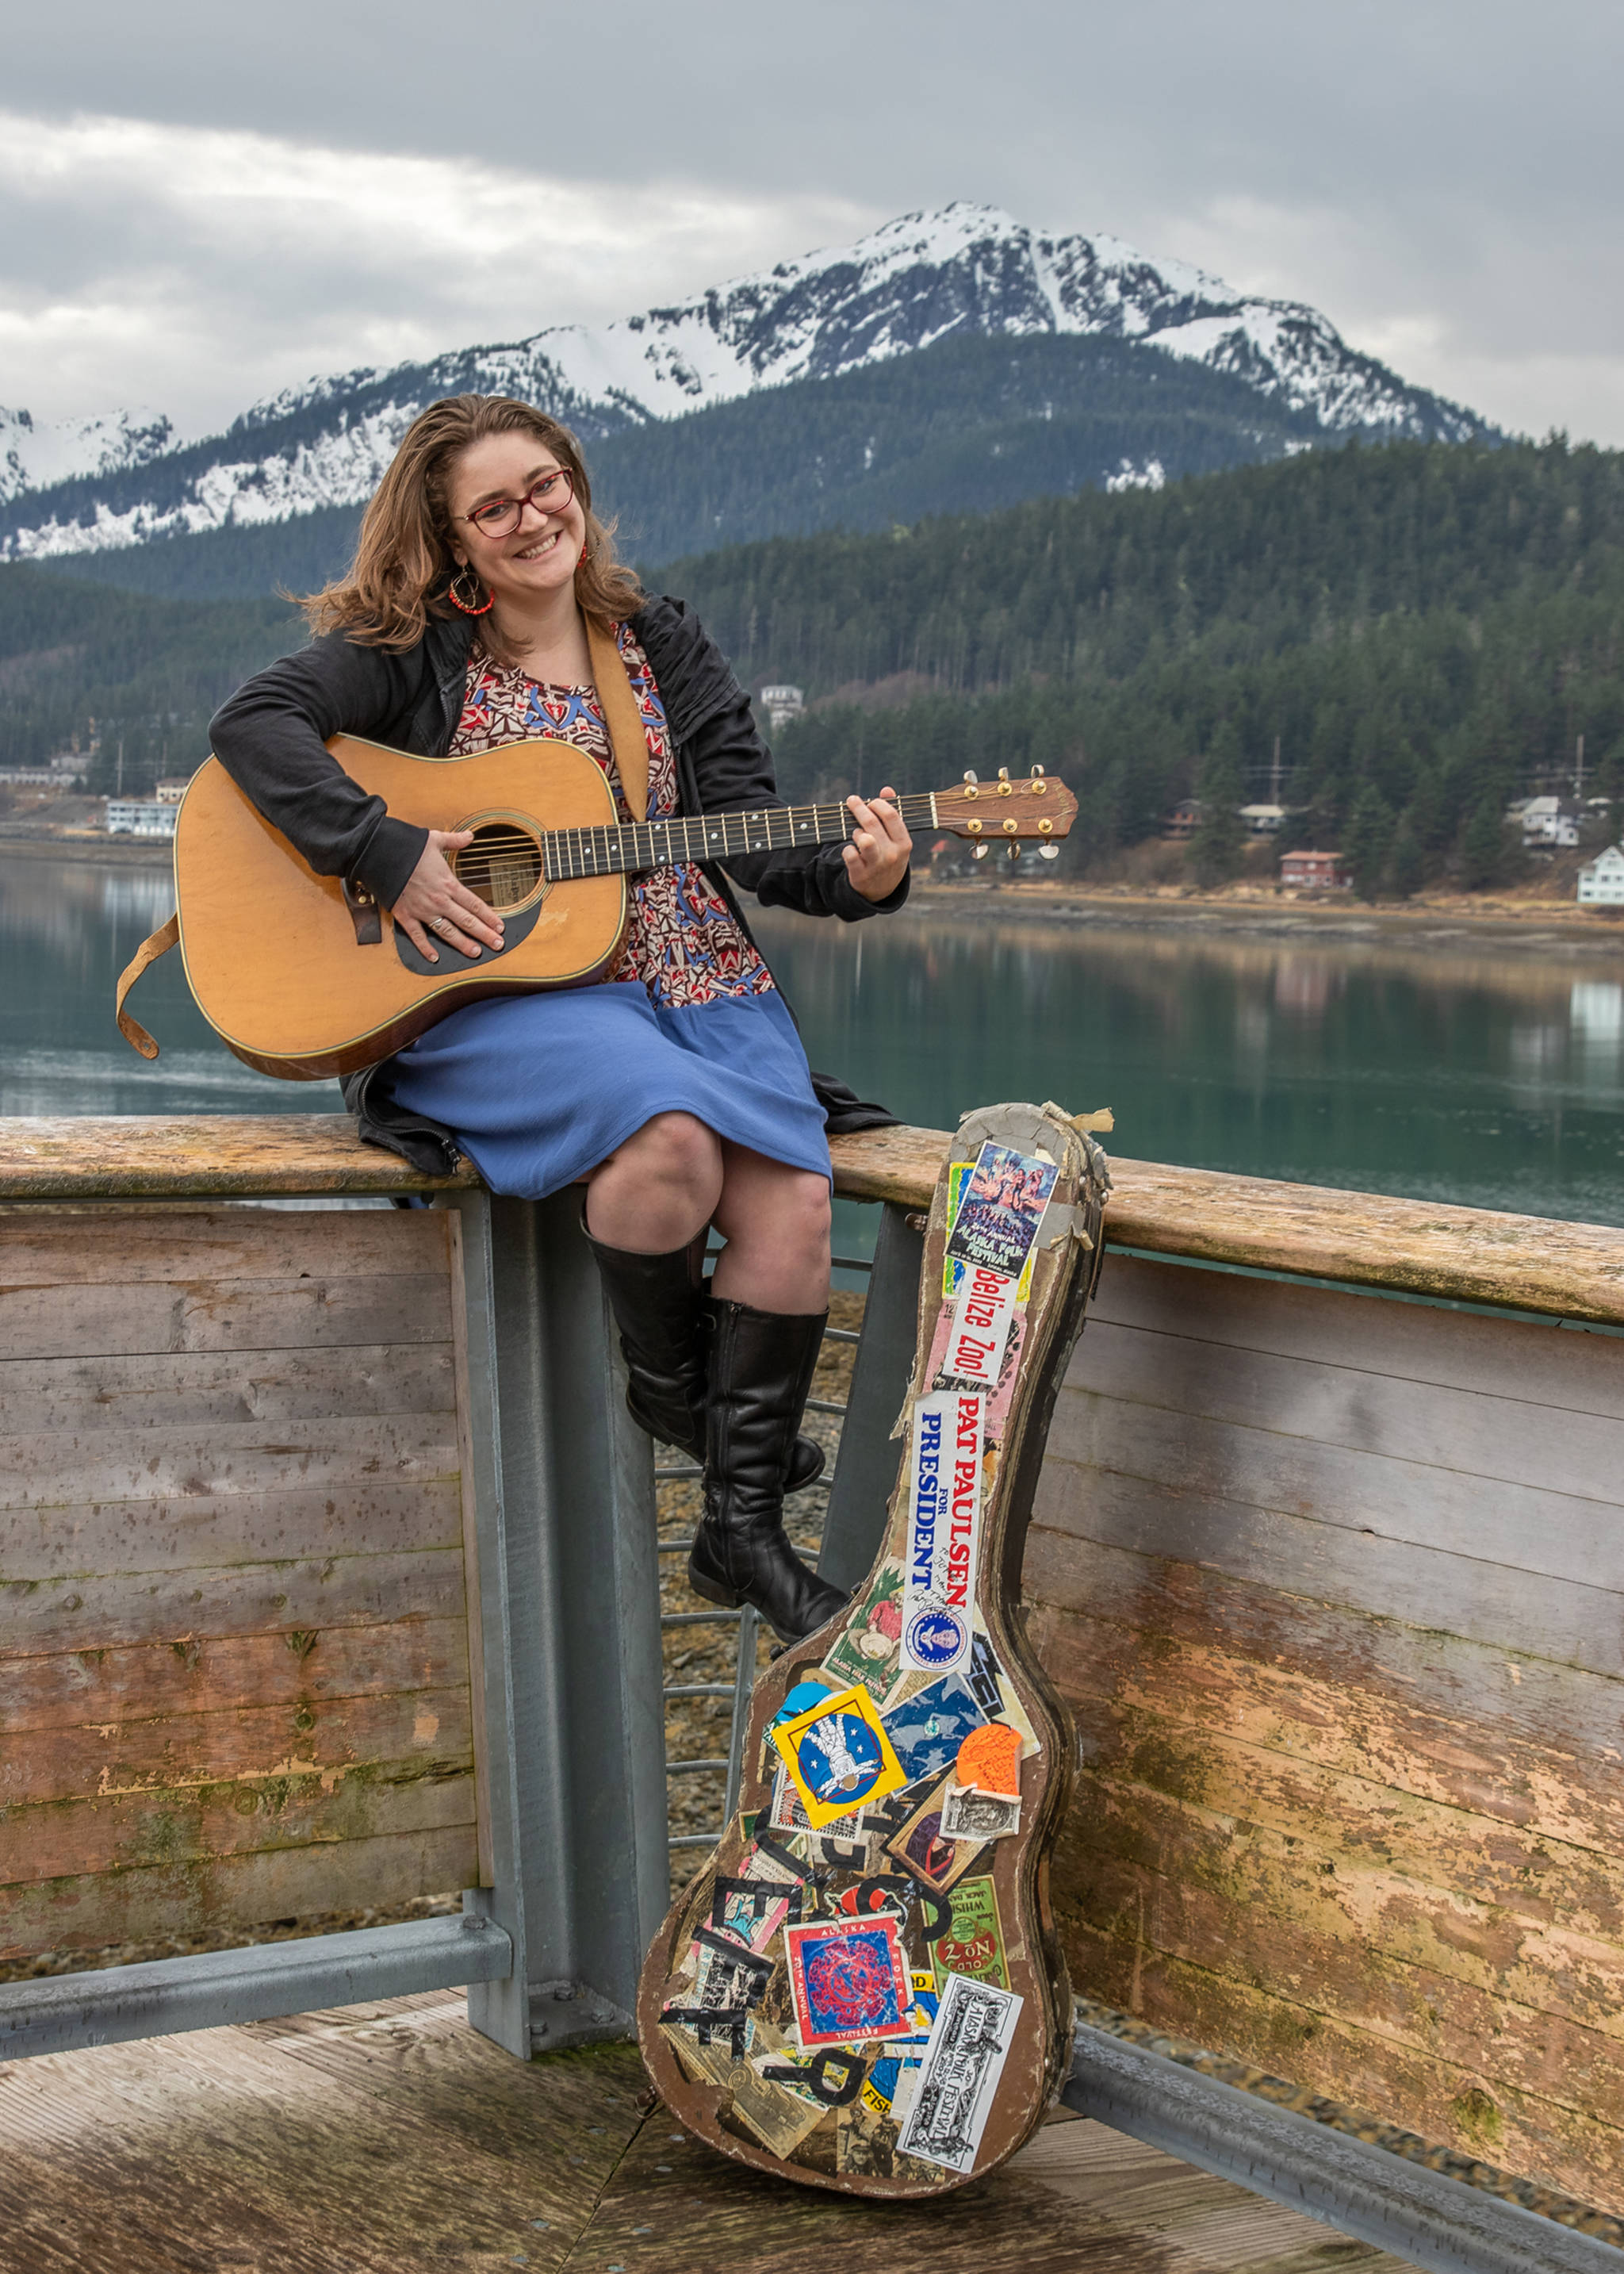 April 14, 2019: The Alaska Folk Festival has a style all its own as does Callie Conerton. Callie first appeared on stage at this annual event when she was 2 years old and has played on stage there many times since. This day she wore a colorful empire waist dress from LuLaRoe, a black jacket from Prairie Grass, and black leather boots from Bos. & Co. Her essential accessories include her red glasses, red and gold beaded hoop earrings that her mom Maureen Conerton got while traveling, and an A LoPrinzi guitar that belongs to her dad Jeff Brown, which has been played in every Folk Fest since 1975.